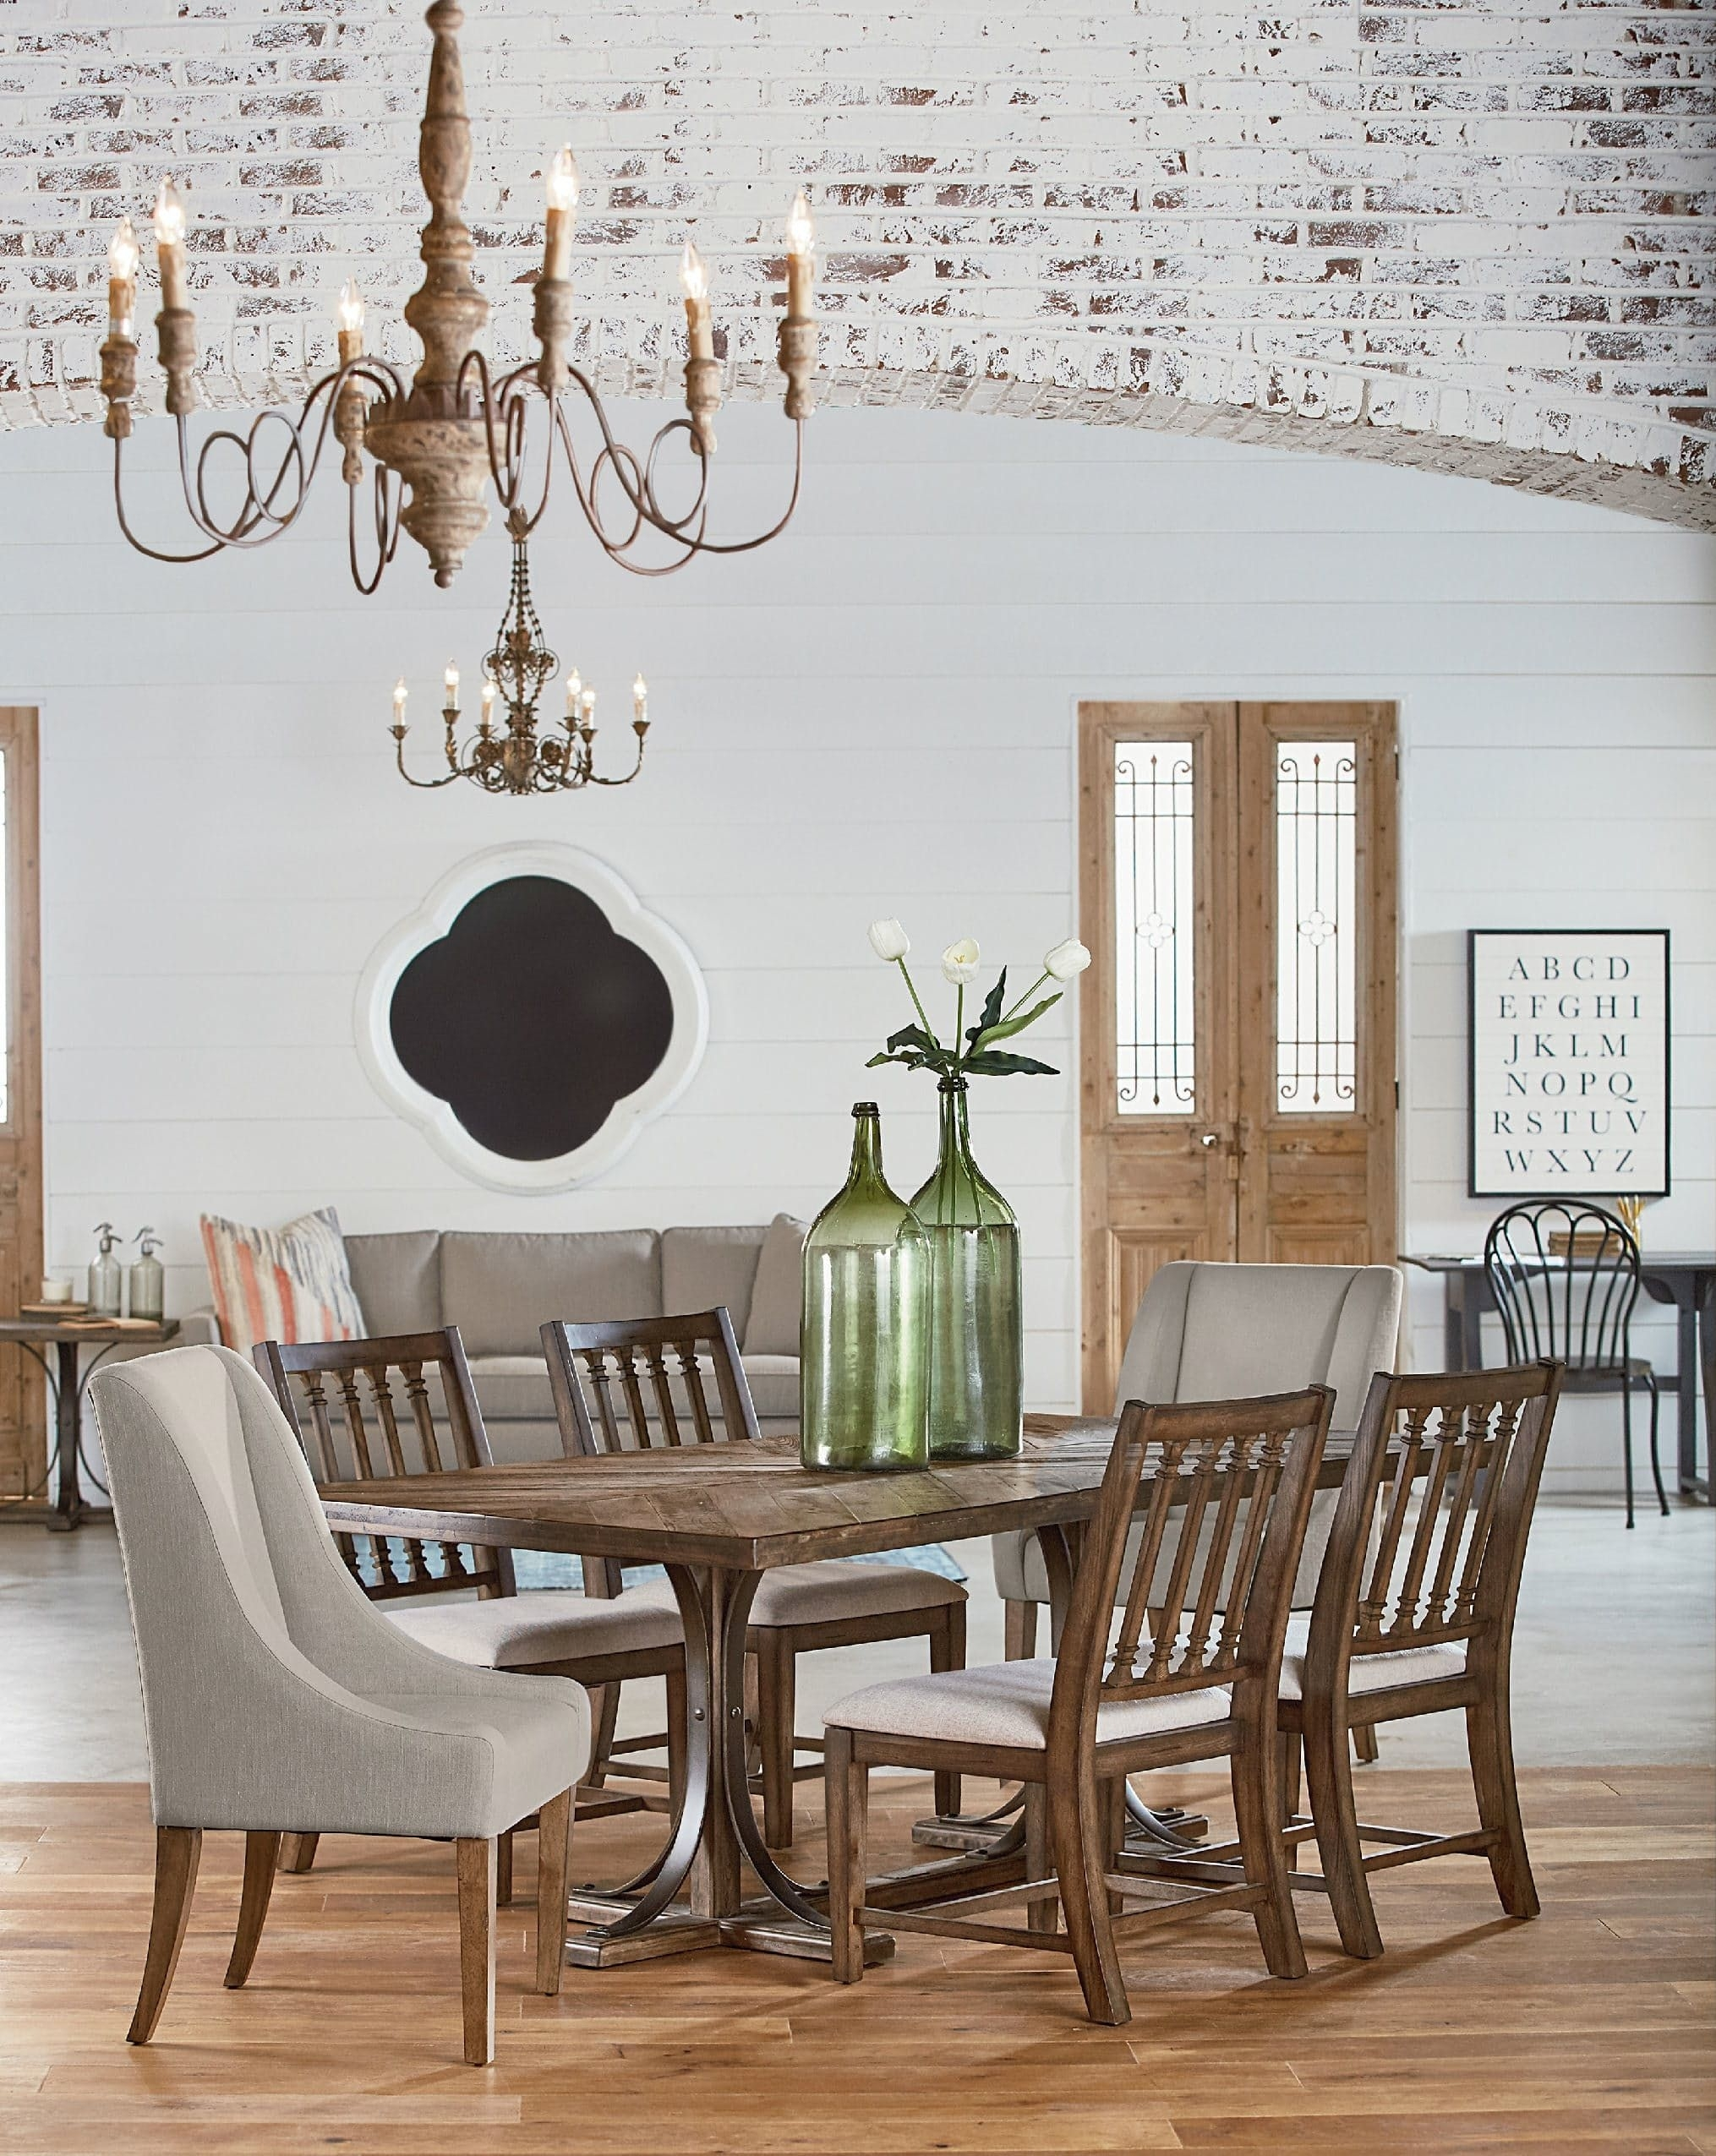 Magnolia Home – Iron Trestle Table | Shopping For New House Inside 2017 Magnolia Home Sawbuck Dining Tables (Image 11 of 20)